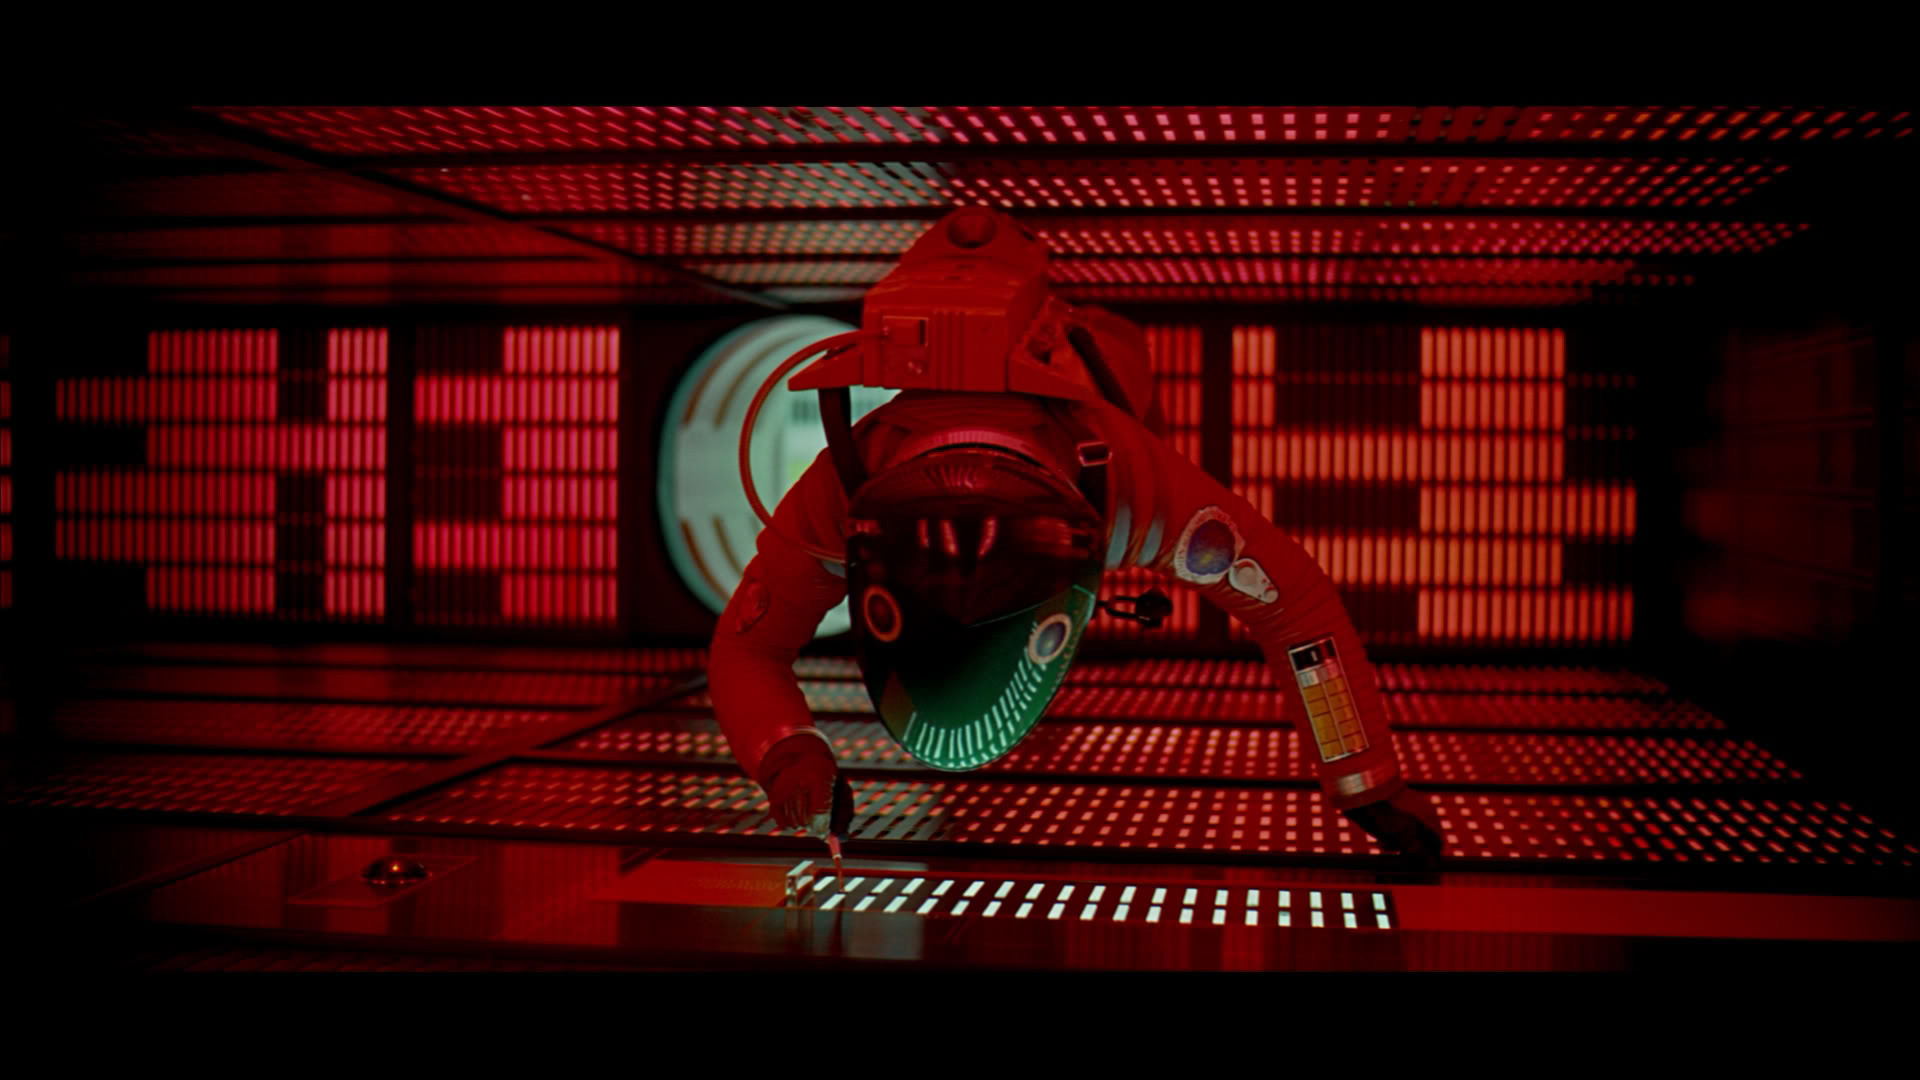 Scene from 2001: A Space Odyssey where the main character floats within an orientation-less room of computer controls.